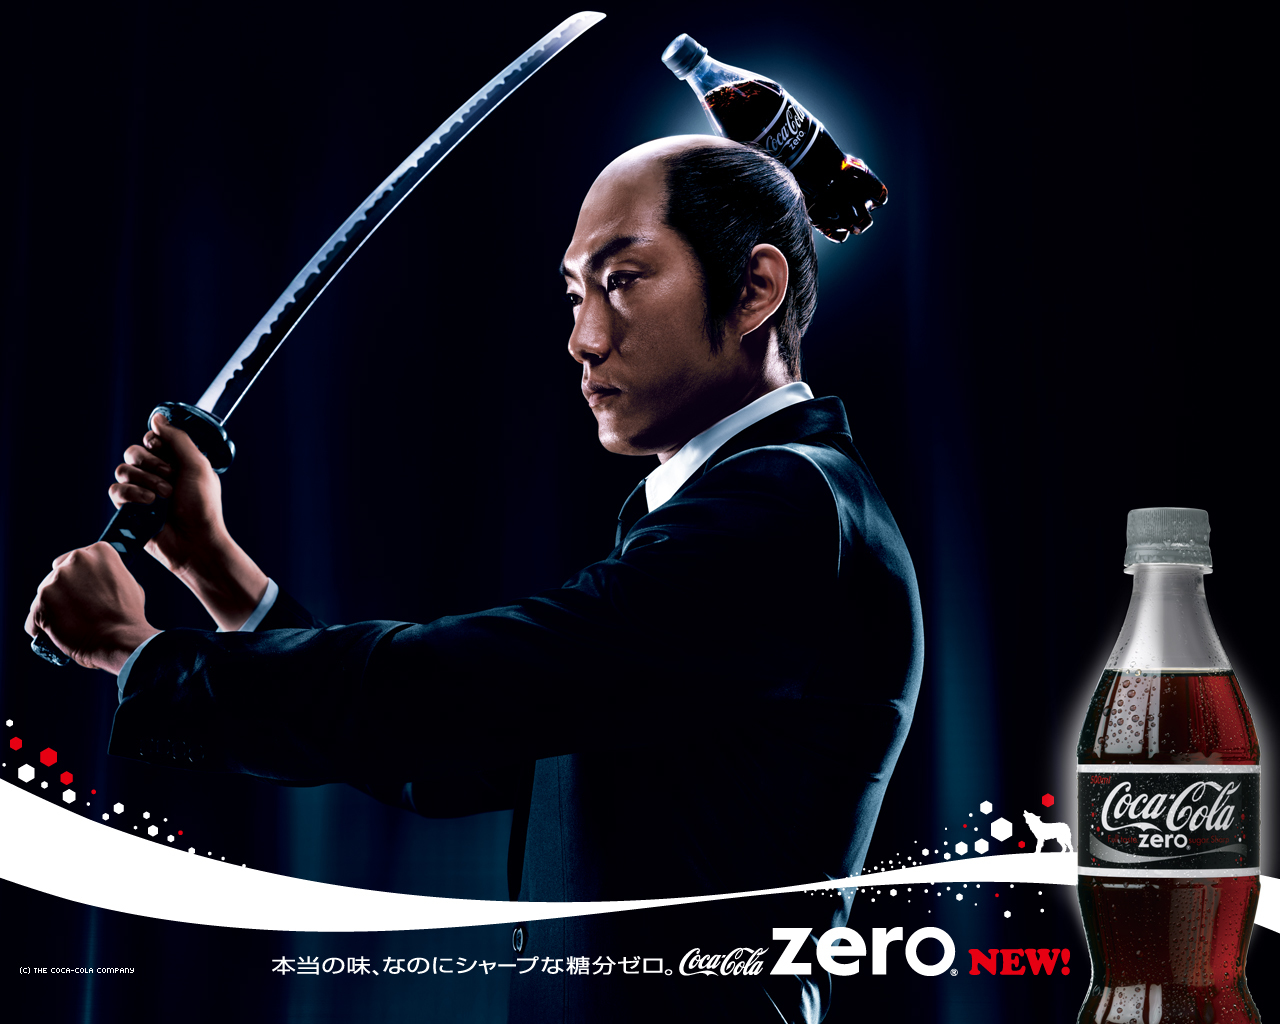 zero coca-cola coke Japanese HD Wallpaper